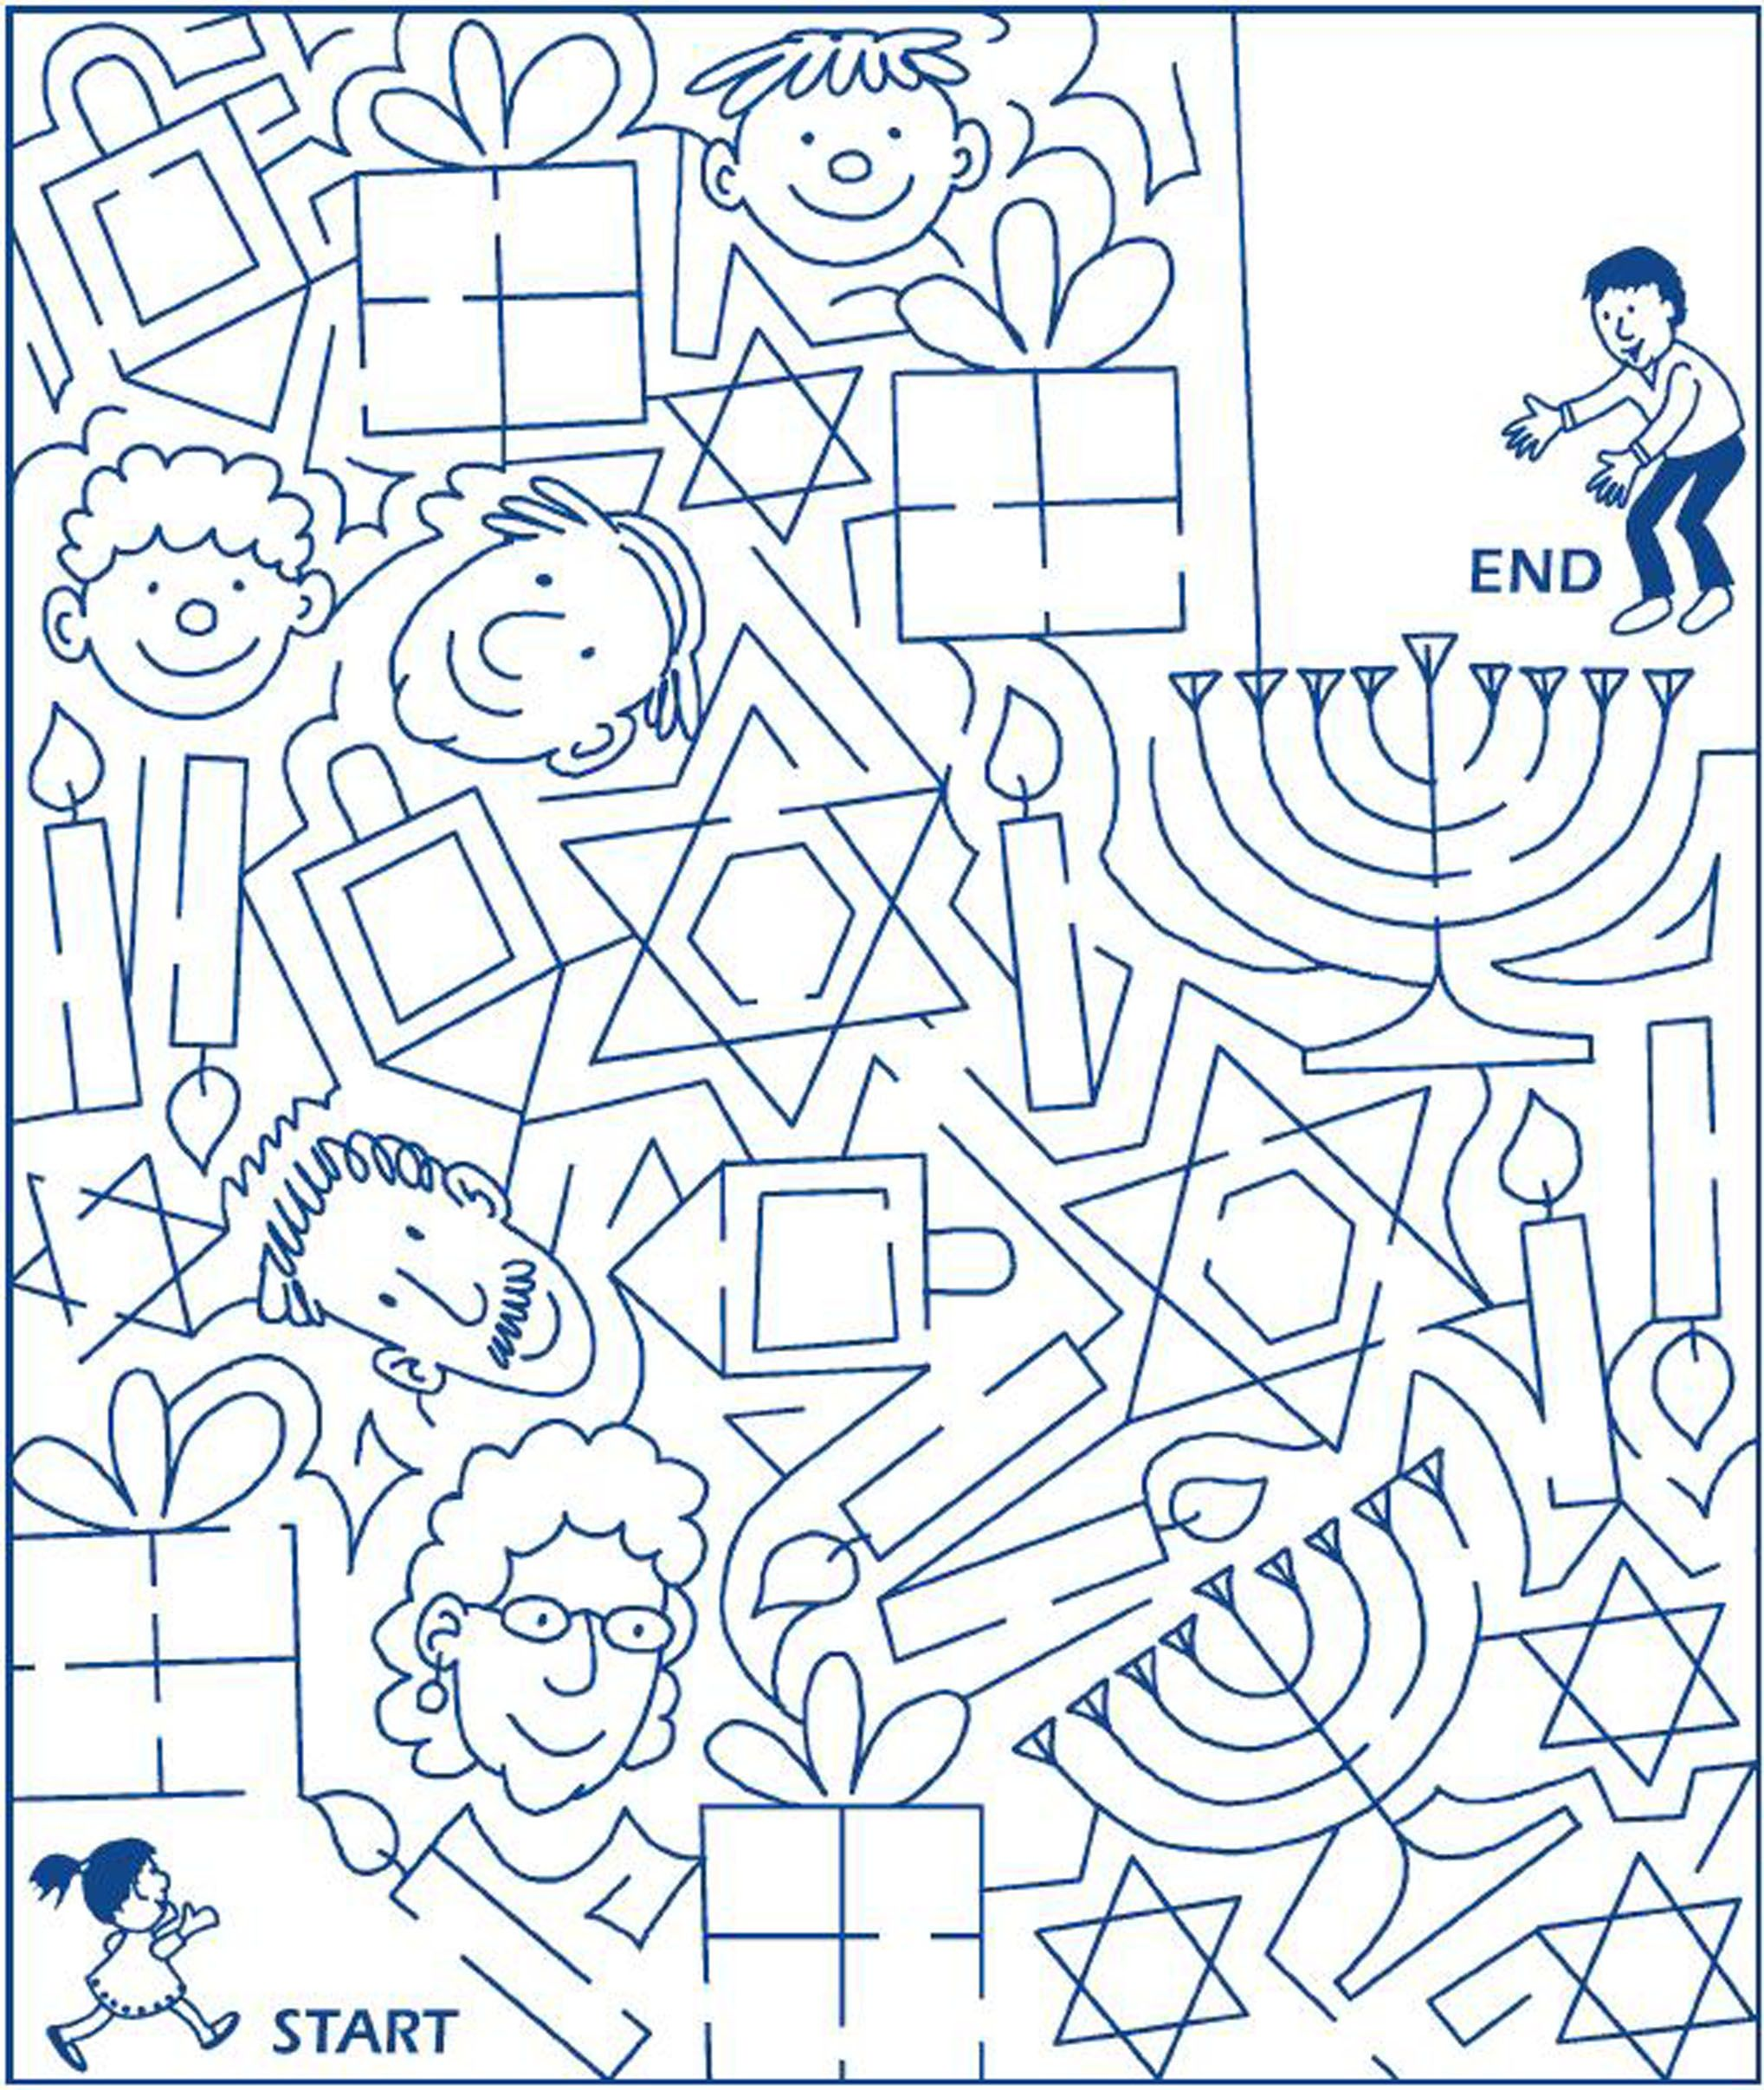 Worksheets Chanukah Math For Preschool Worksheets Best Free Printable Worksheets